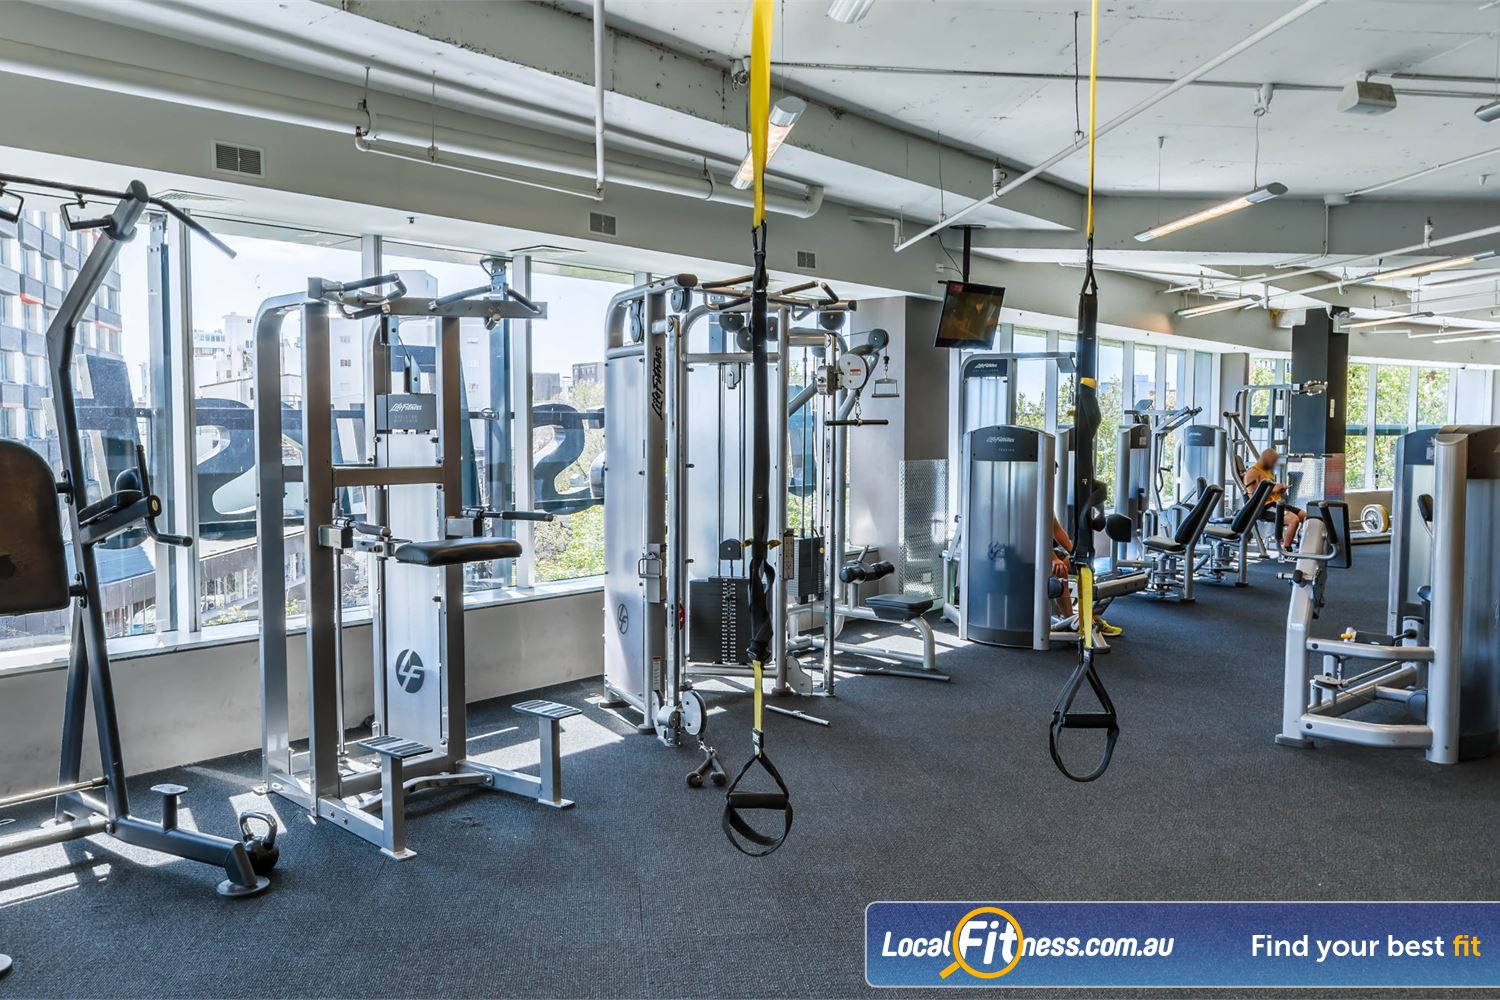 Fitness First Platinum Kings Cross Near Woolloomooloo Our Kings Cross gym uses state of the art Life Fitness pin-loading machines.